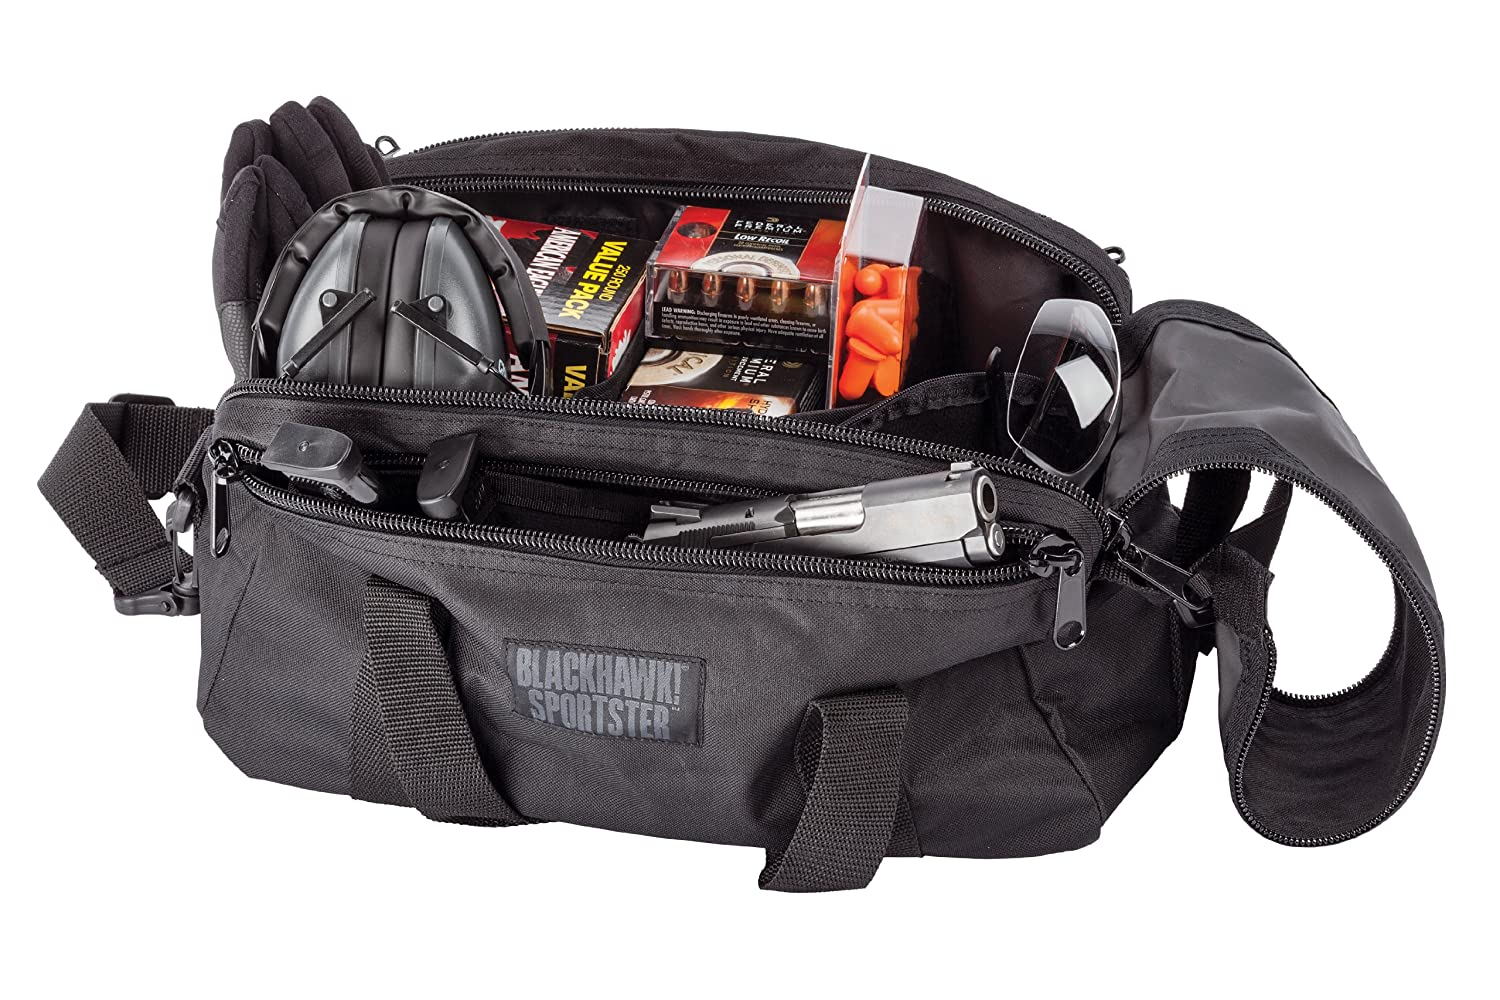 BlackHawk's Sportster Range Bag is a great entry-level option.